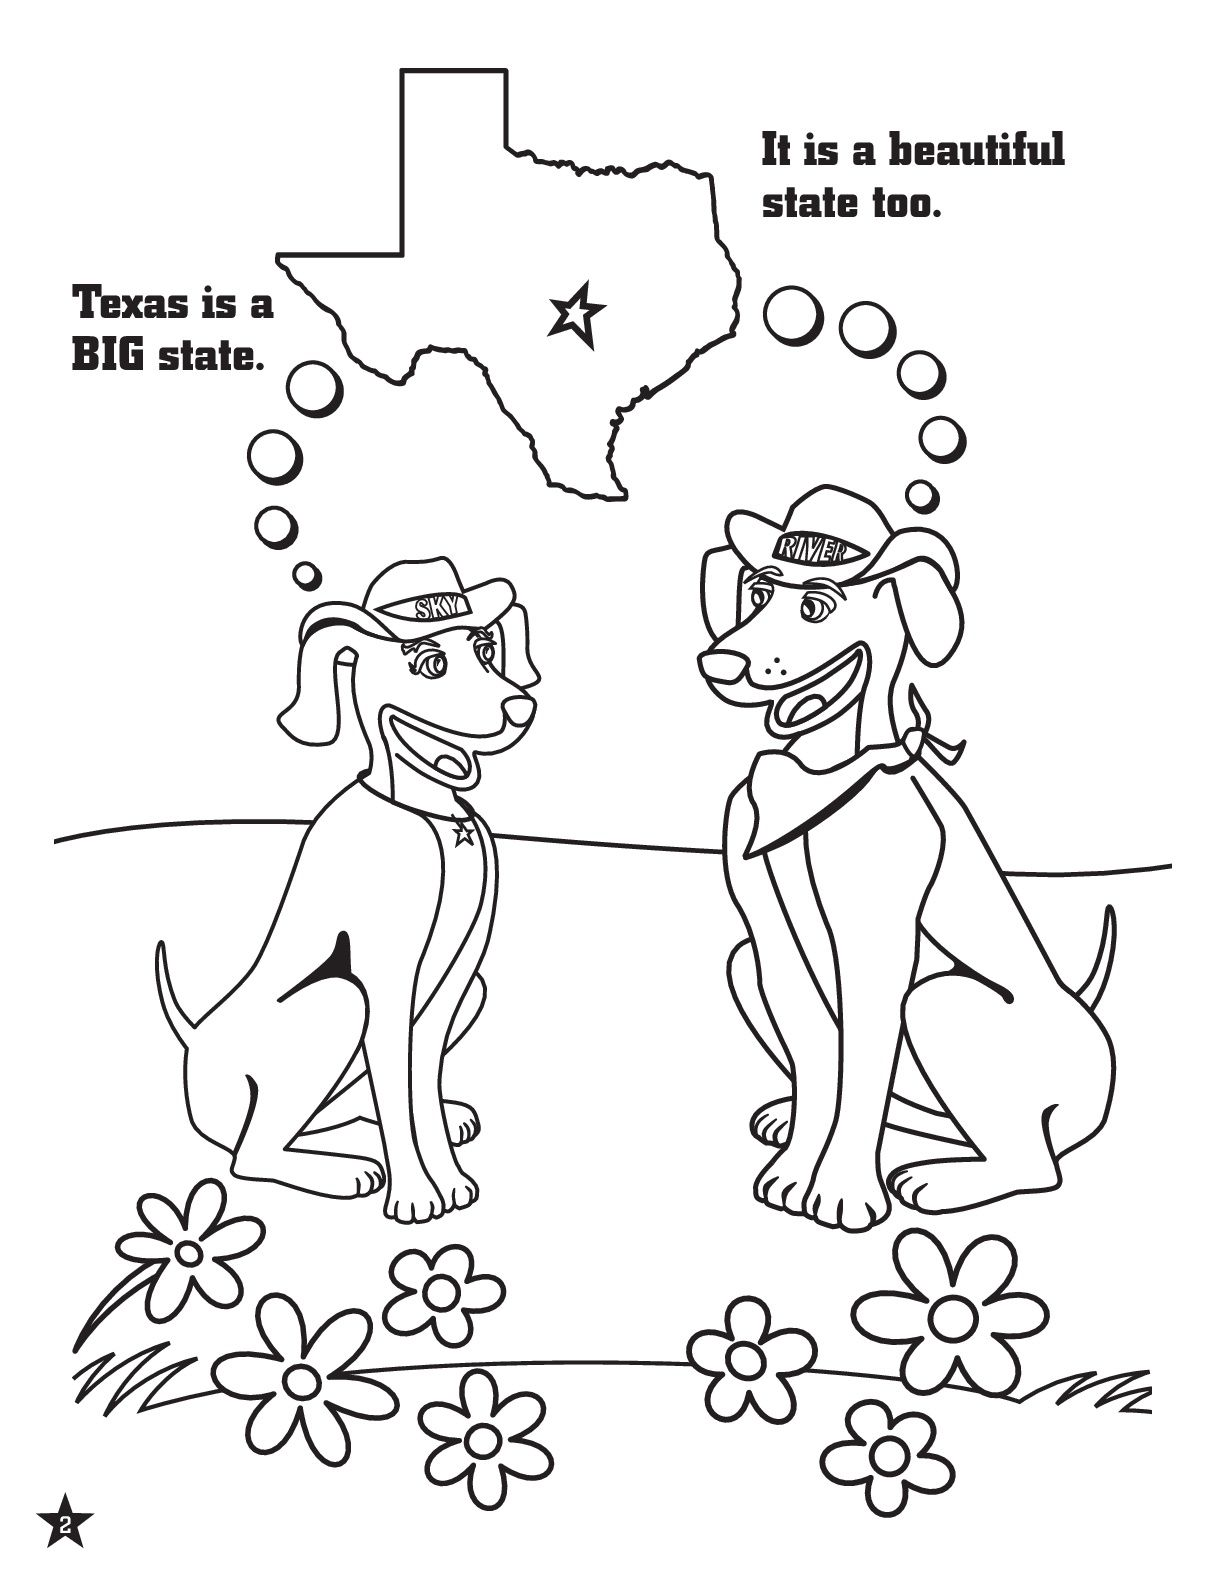 Take Care Of Texas Coloring Page